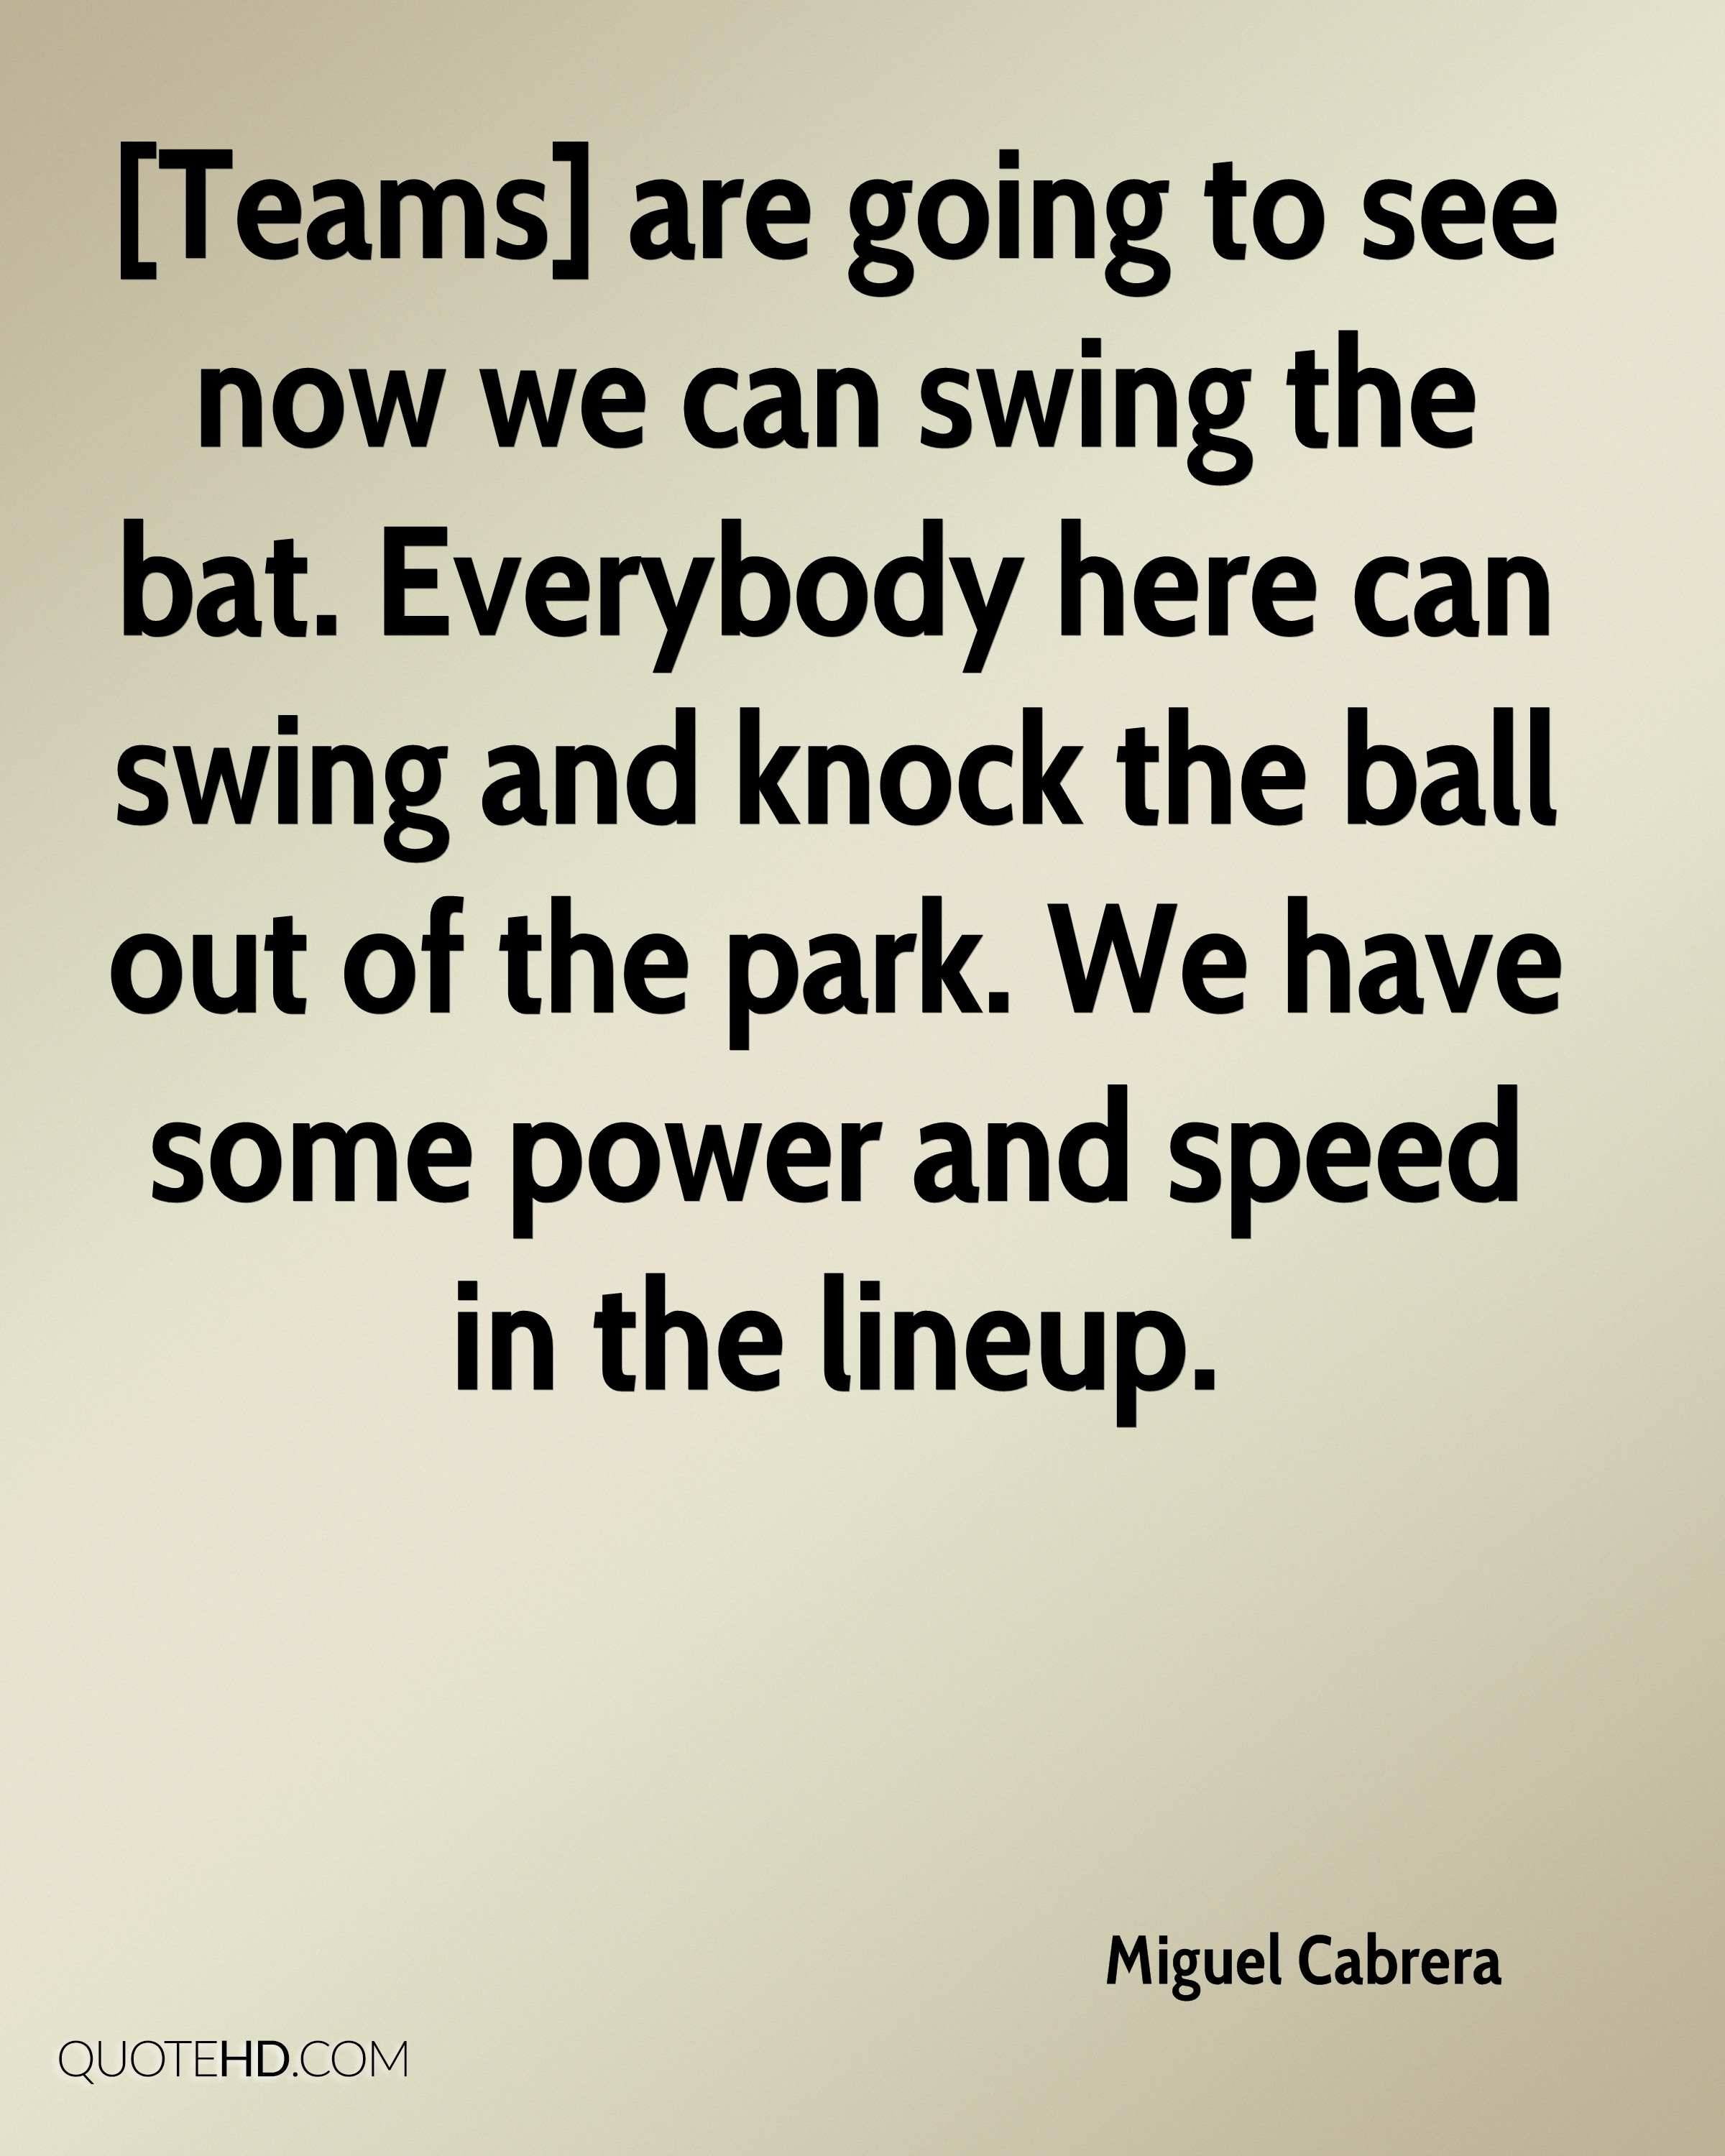 [Teams] are going to see now we can swing the bat. Everybody here can swing and knock the ball out of the park. We have some power and speed in the lineup.